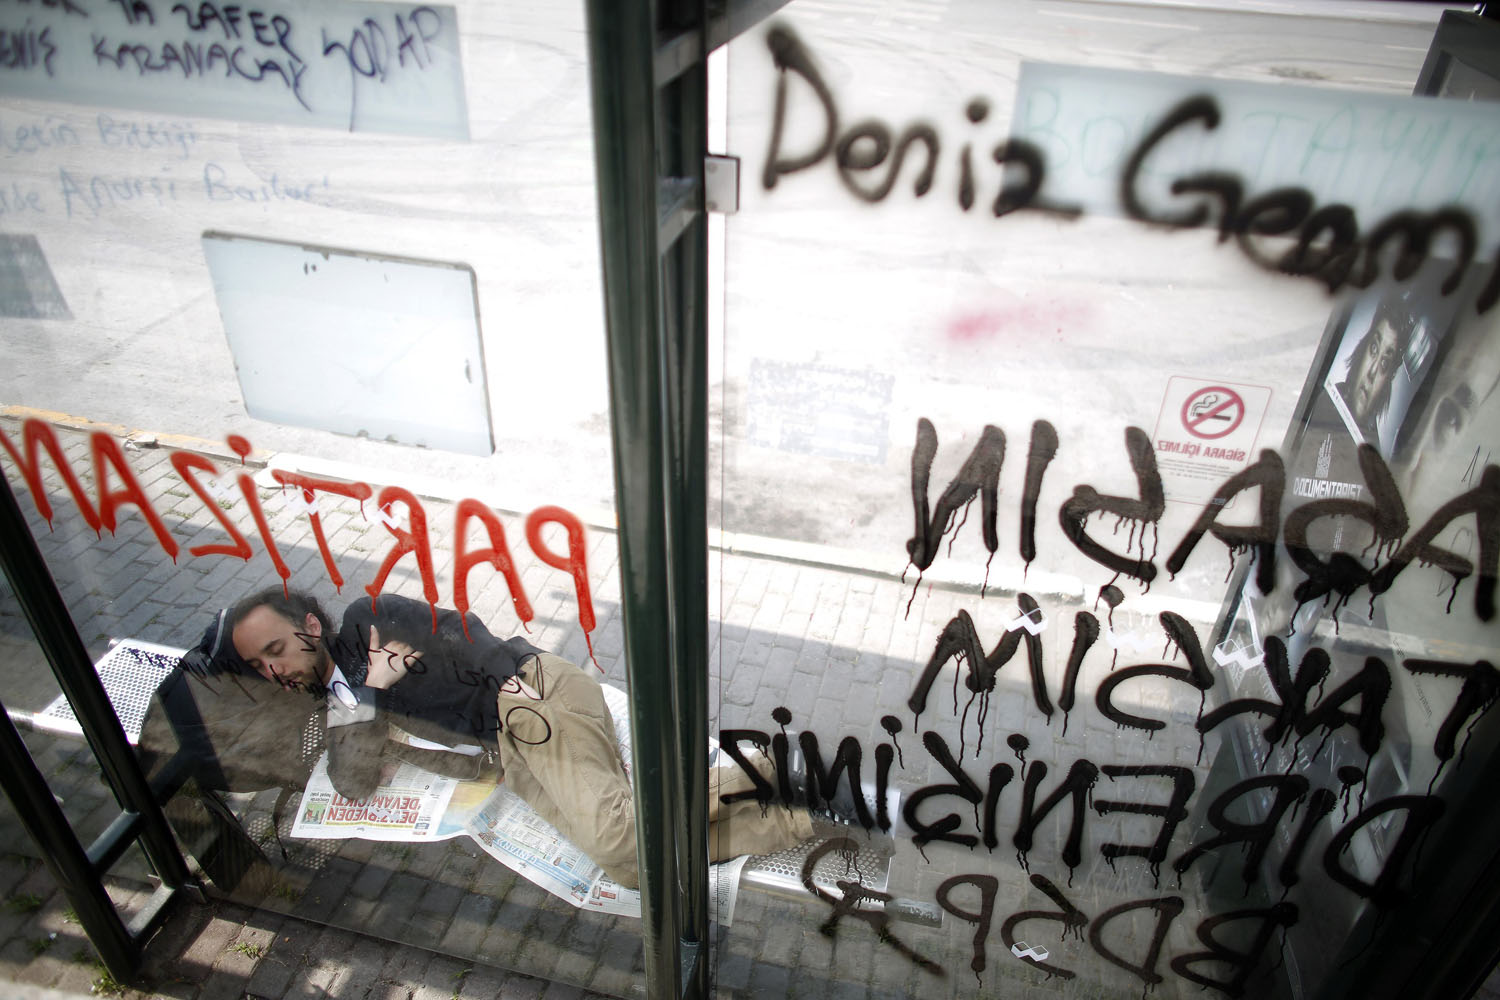 June 4, 2013. A protester sleeps at a bus stop sprayed with graffiti at Taksim Square in Istanbul, Turkey.